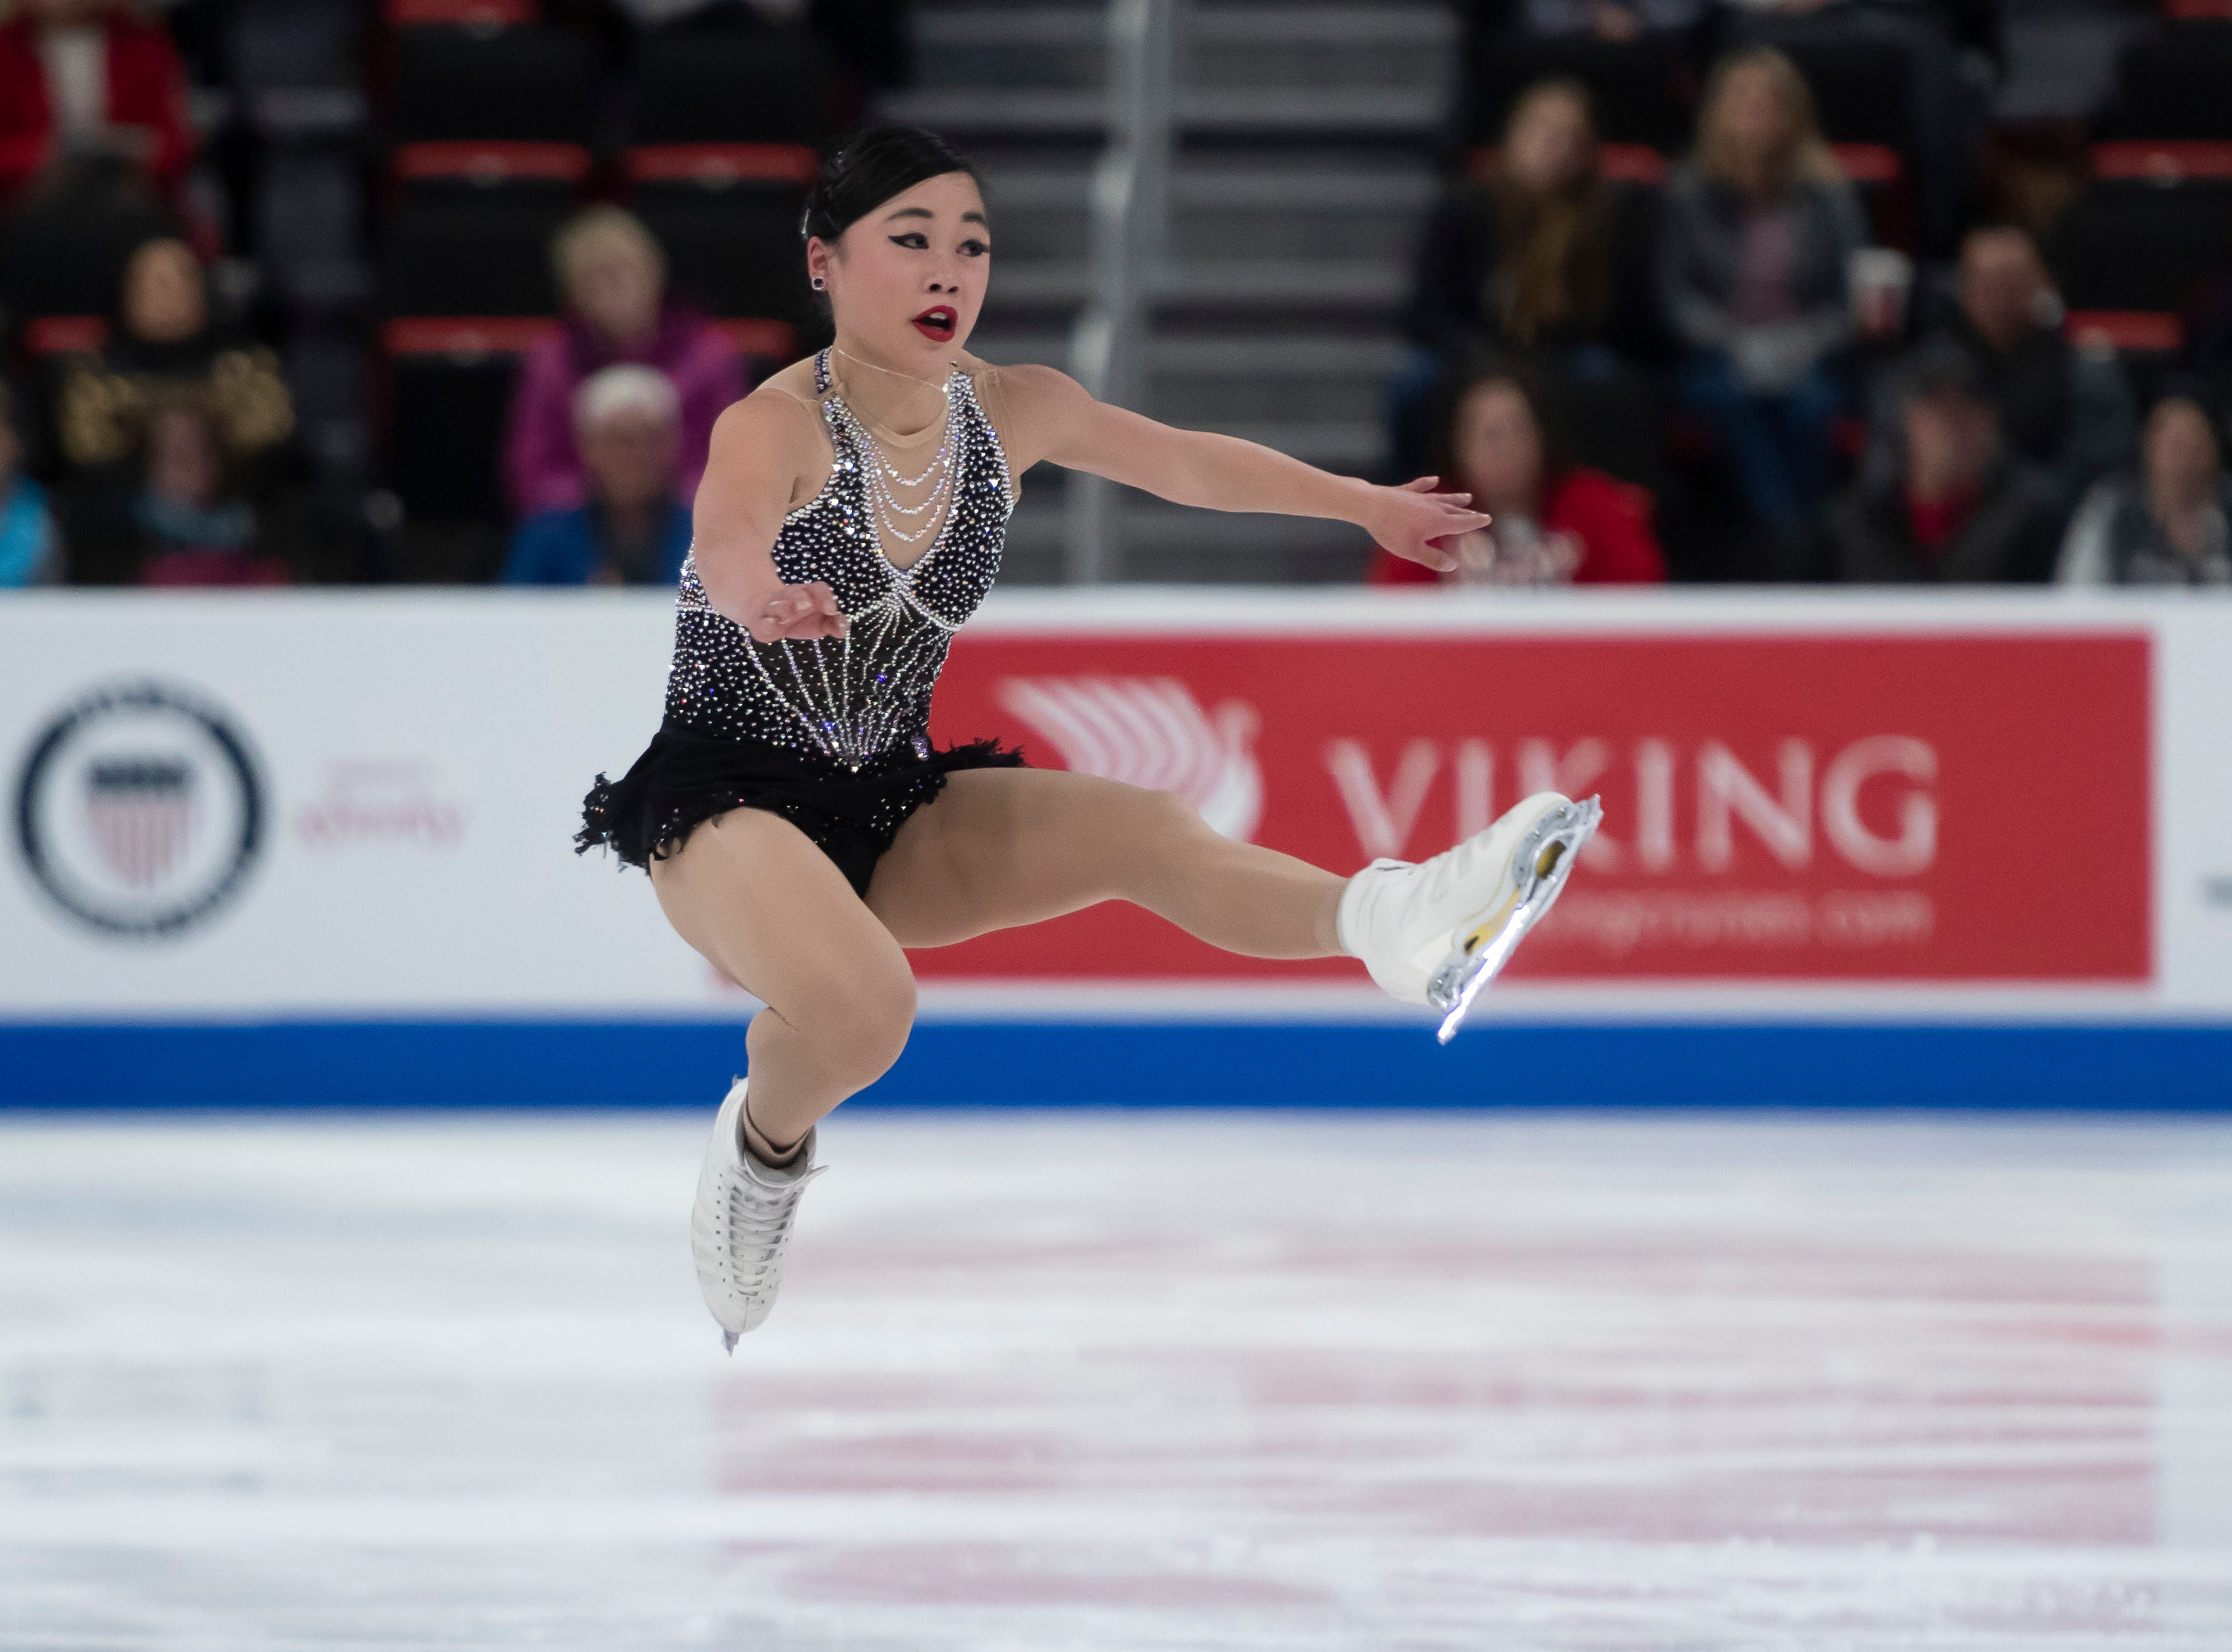 Brynne McIsaac competes in the ladies short program.